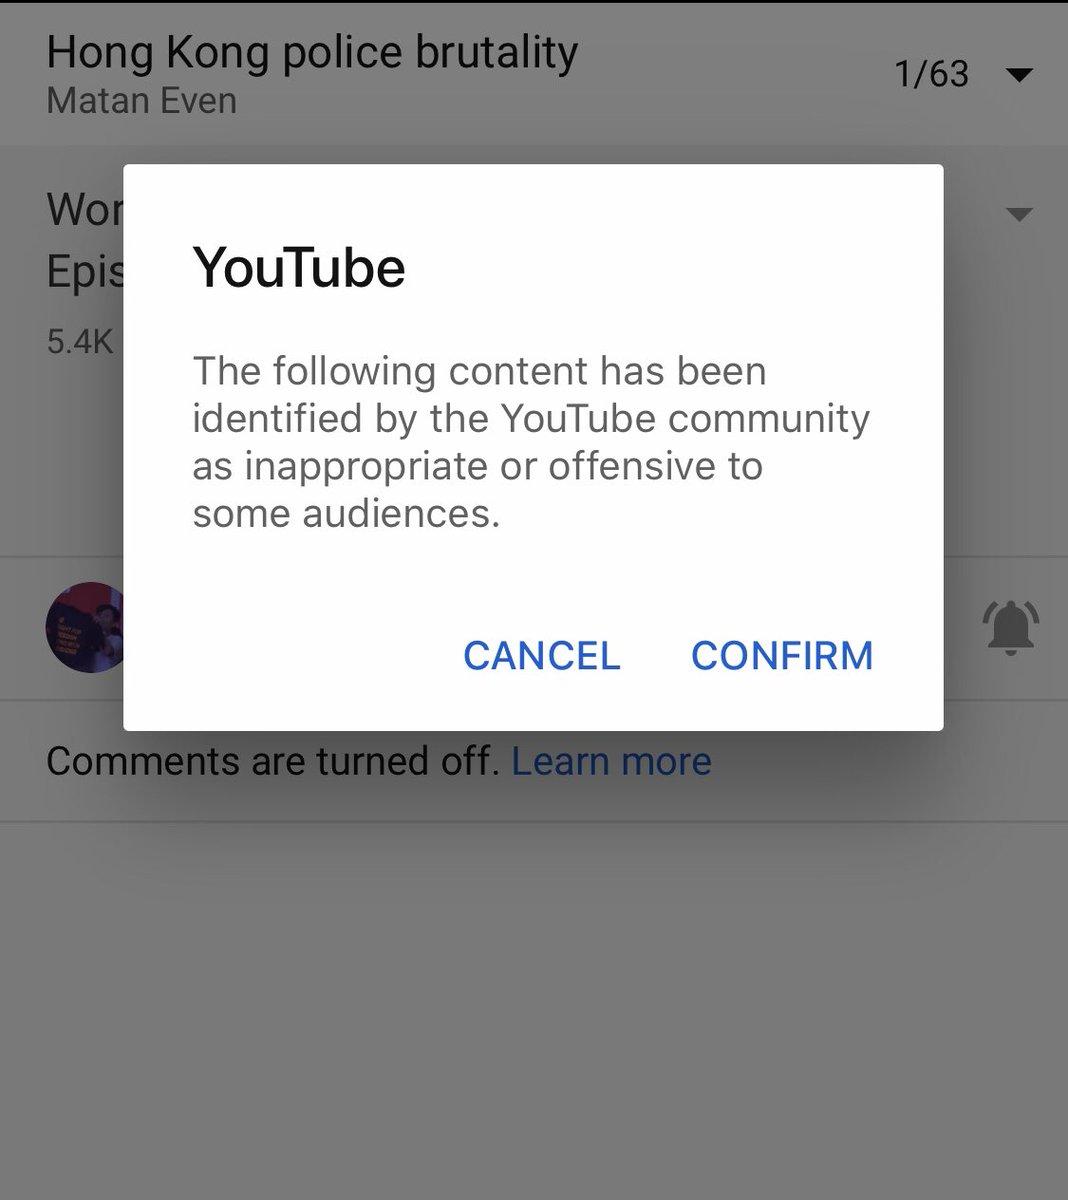 .@YouTube has now sadly age restricted my entire playlist of #hongkong police brutality videos. Youtube has also previously taken down multiple of my videos. Playlist of videos - https://t.co/ifTlmC0Dnz 😷😷 https://t.co/yDgWswsy3L